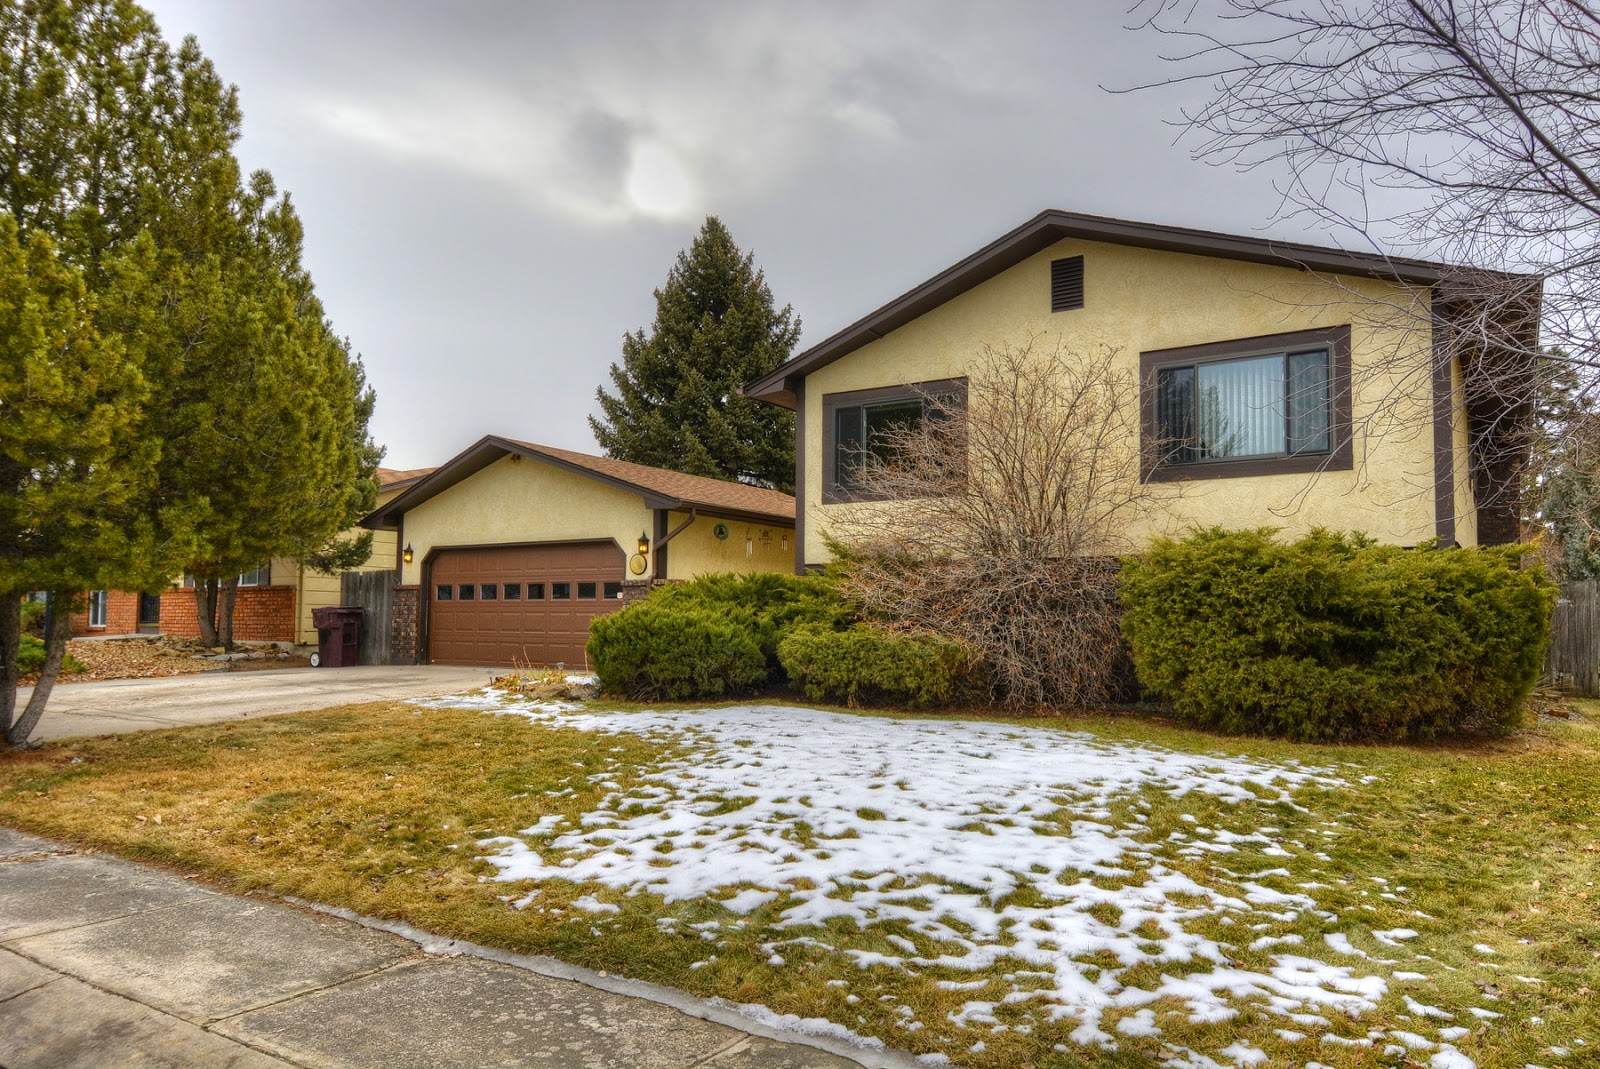 Great Home For Sale In Colorado Springs In Vista Grande Boasting 4  Bedrooms, 2 Bathrooms, Oversized 2 Car Garage And Over 2,000 Square Feet.